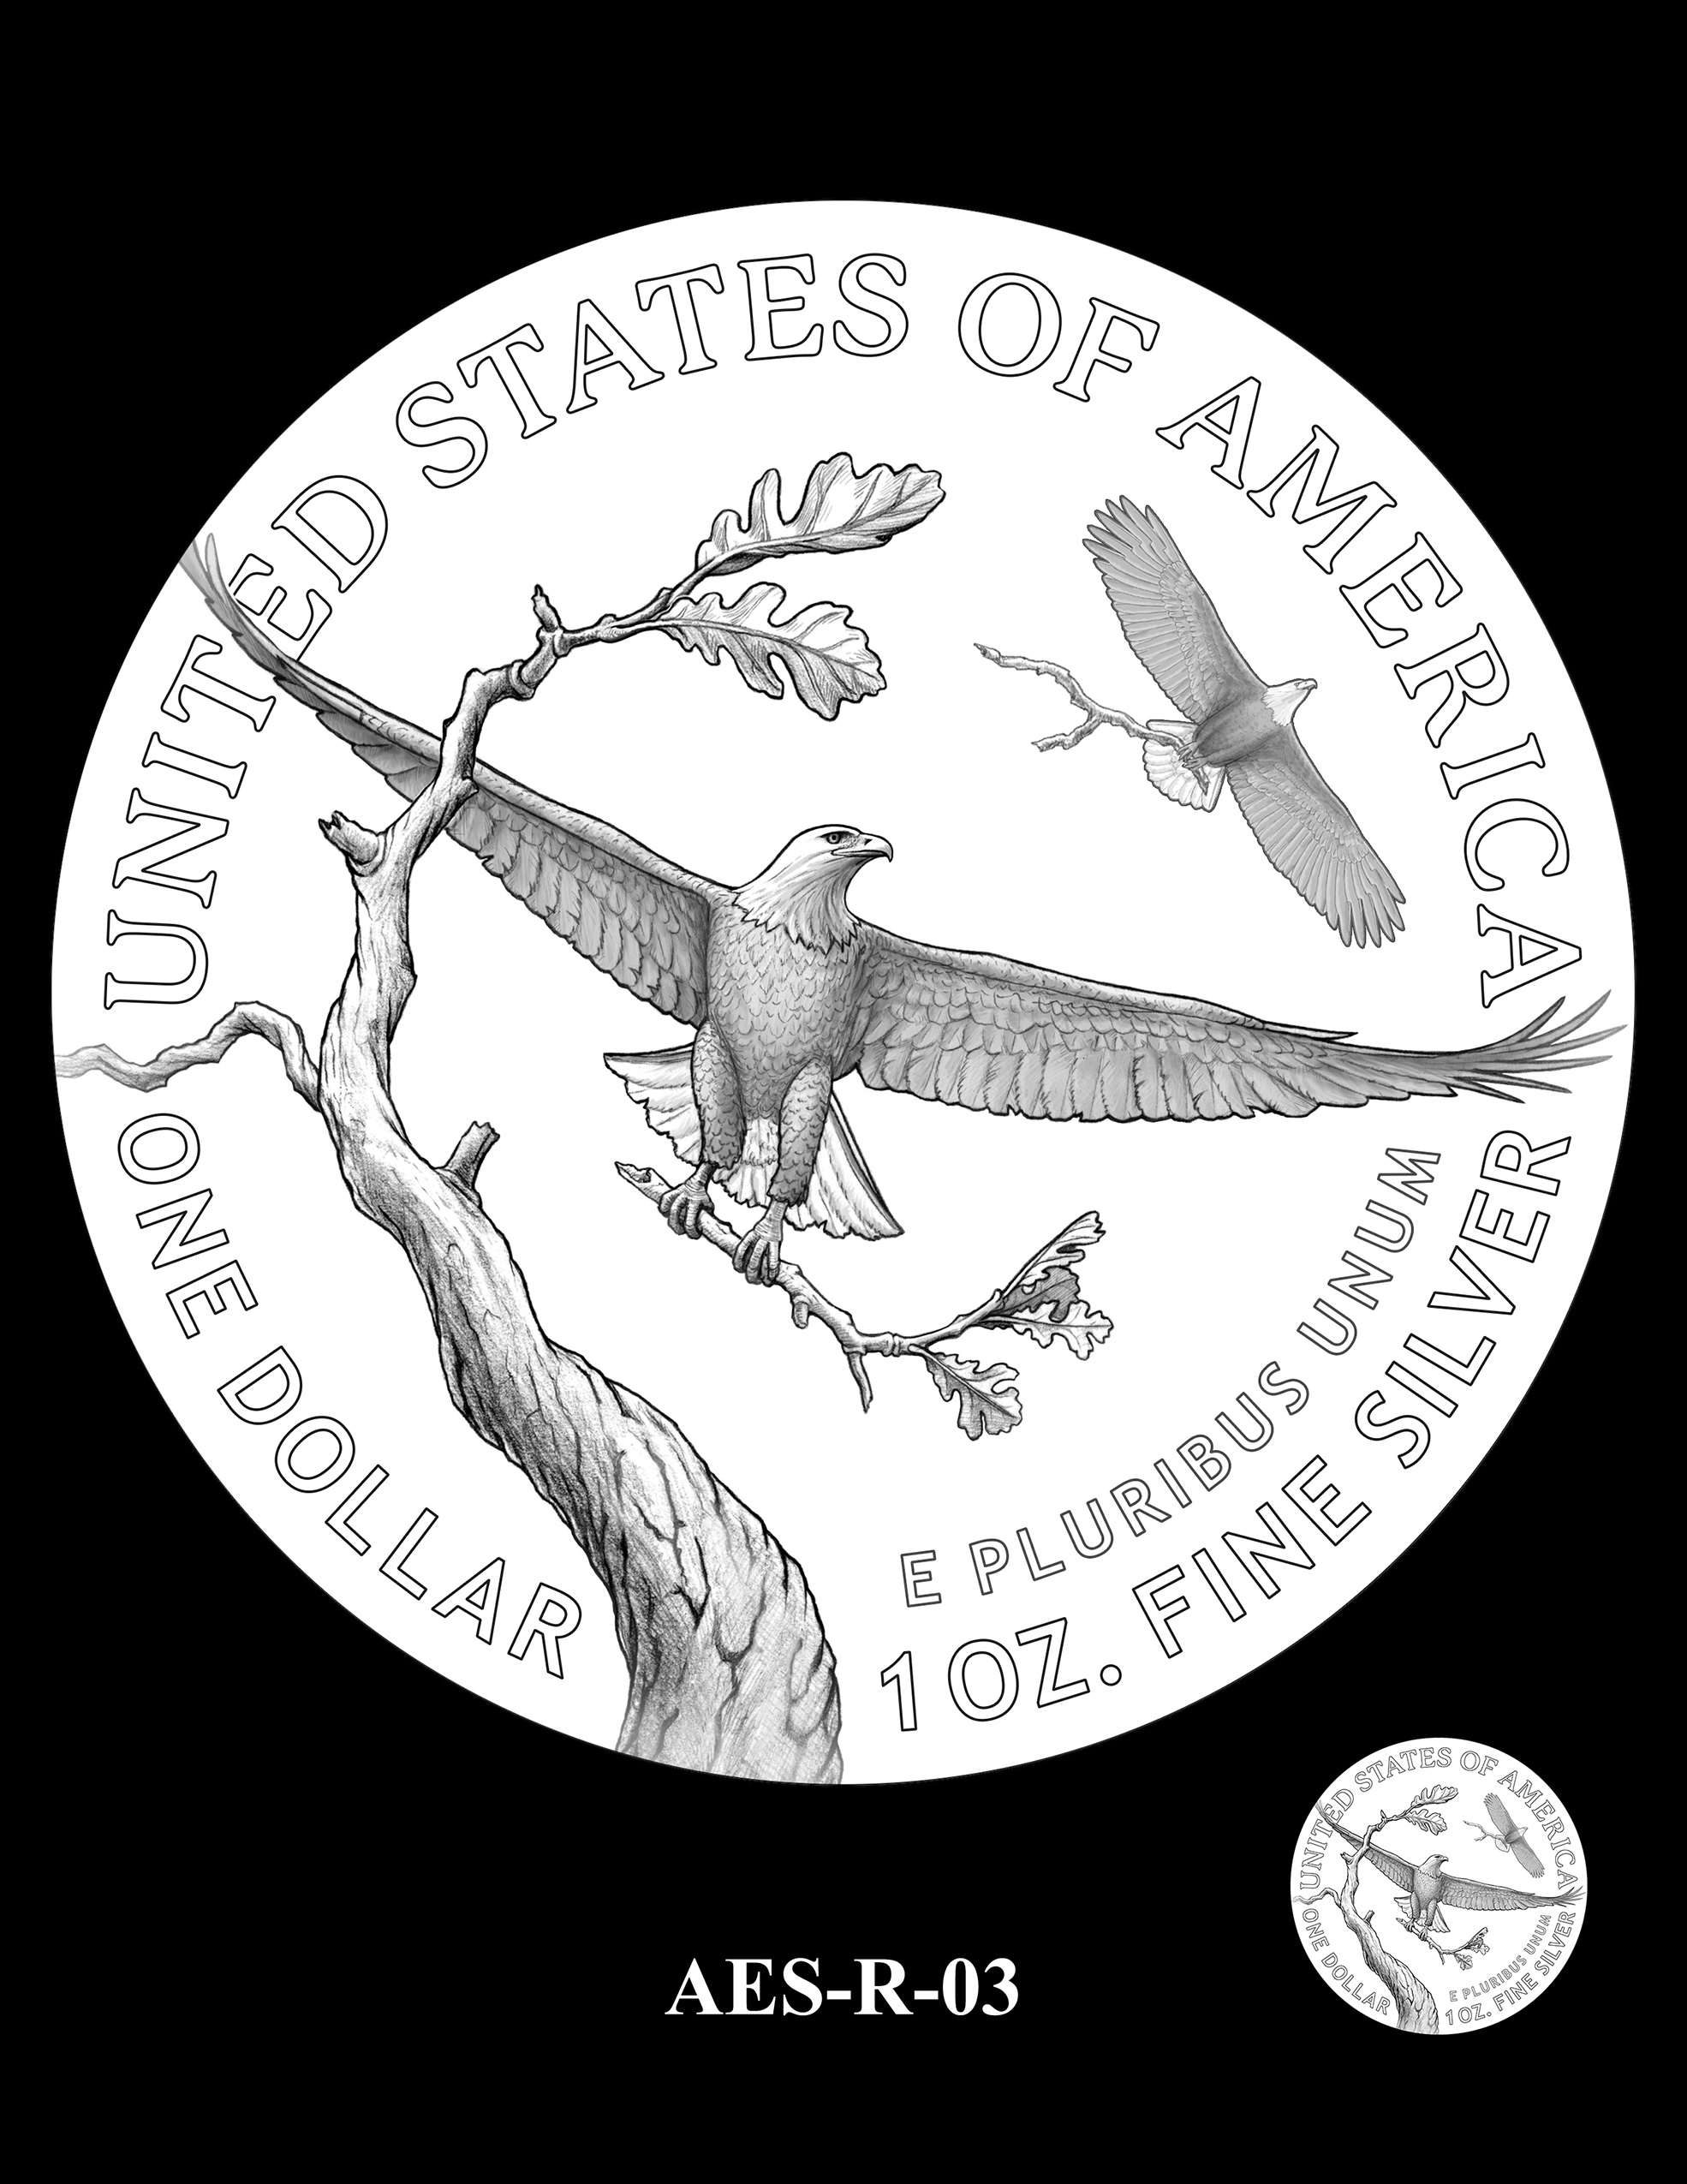 AES-R-03 -- American Eagle Proof and Bullion Silver Coin - Reverse